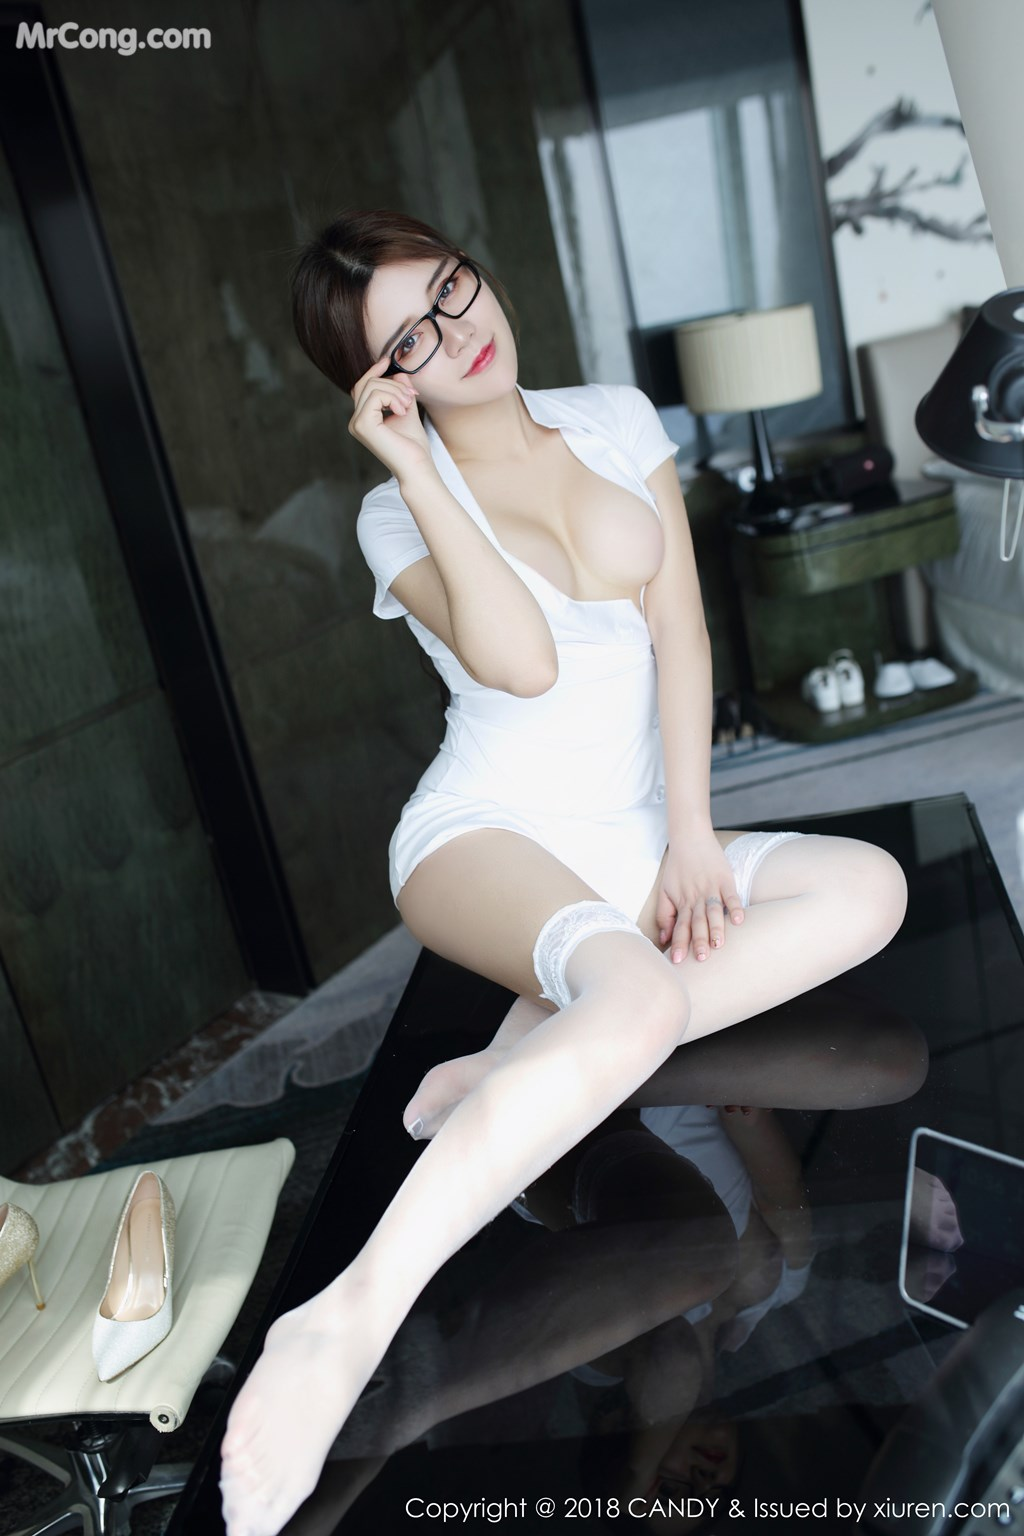 Image CANDY-Vol.058-Cris-MrCong.com-004 in post CANDY Vol.058: Người mẫu Cris_卓娅祺 (45 ảnh)